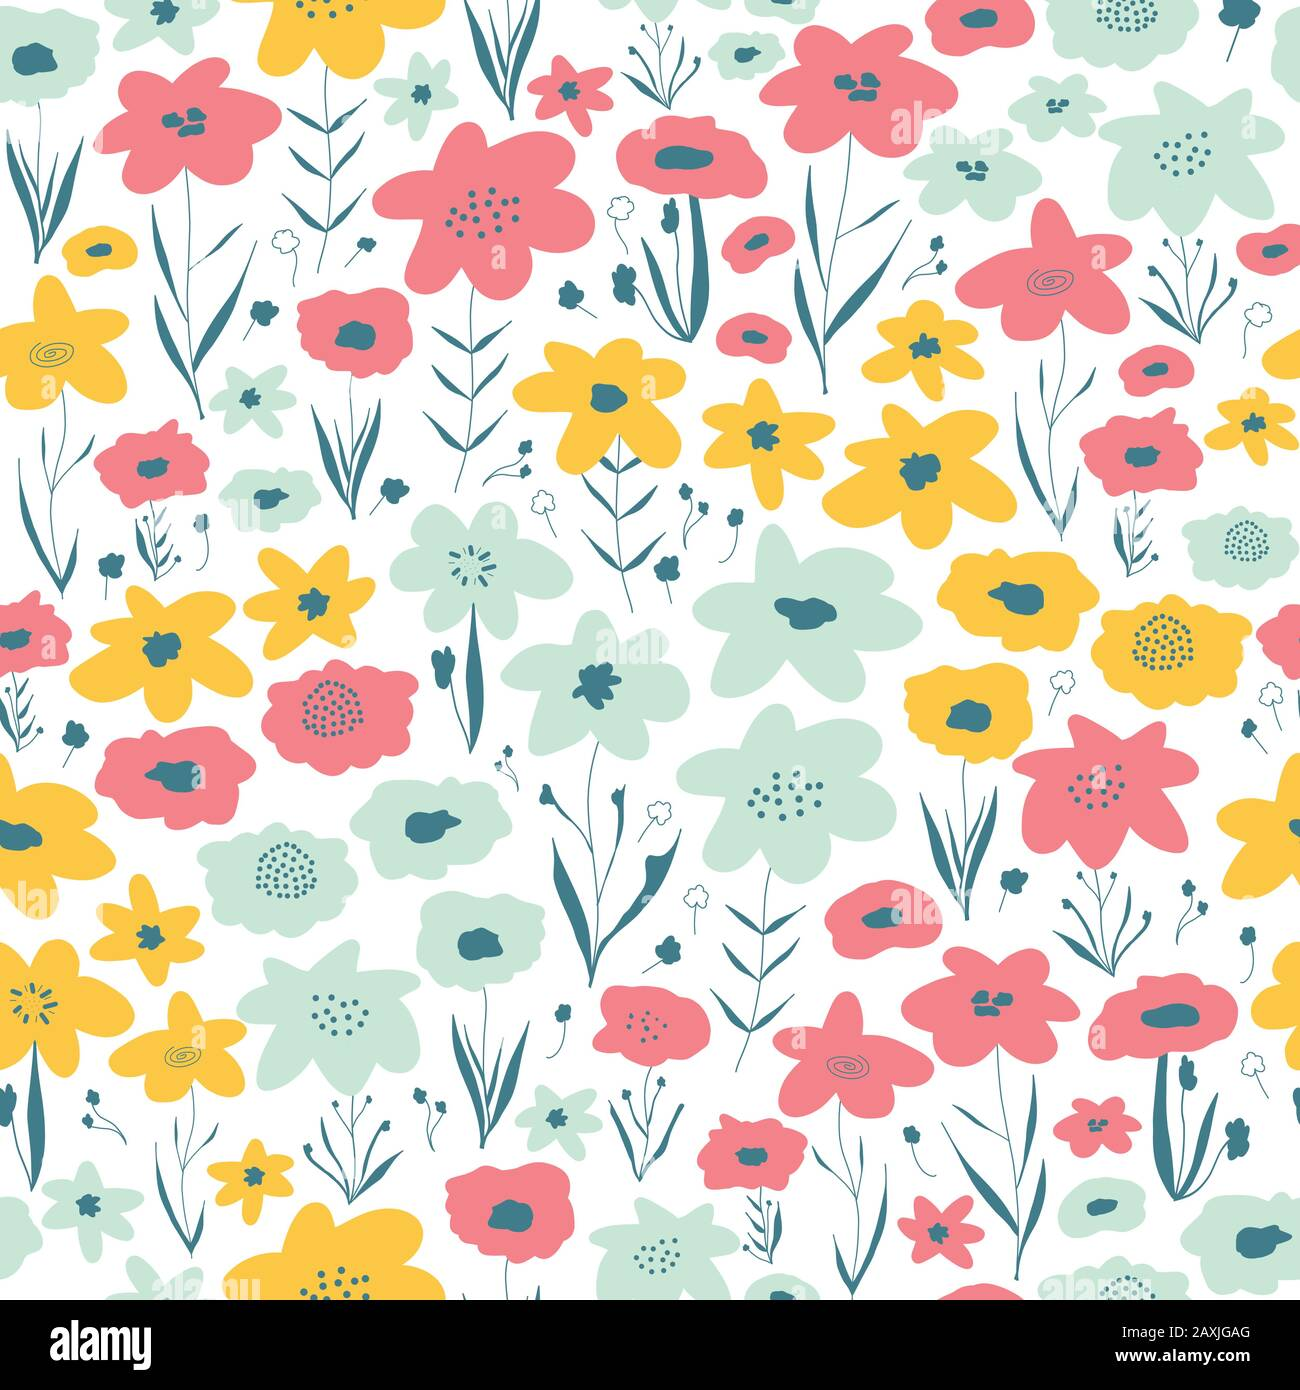 Spring Flower Meadow Seamless Vector Pattern Blue Pink Yellow